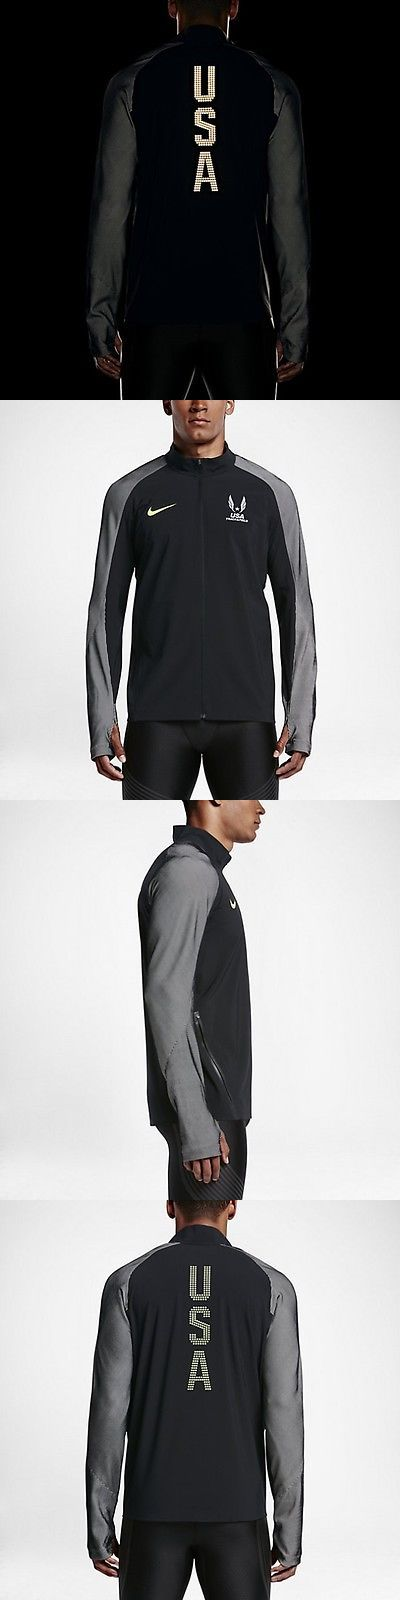 Jackets and Vests 59353: Men S Nike Running Usa Track And Field 2016 Olympic Trials Podium Jacket S Usatf -> BUY IT NOW ONLY: $149.99 on eBay!